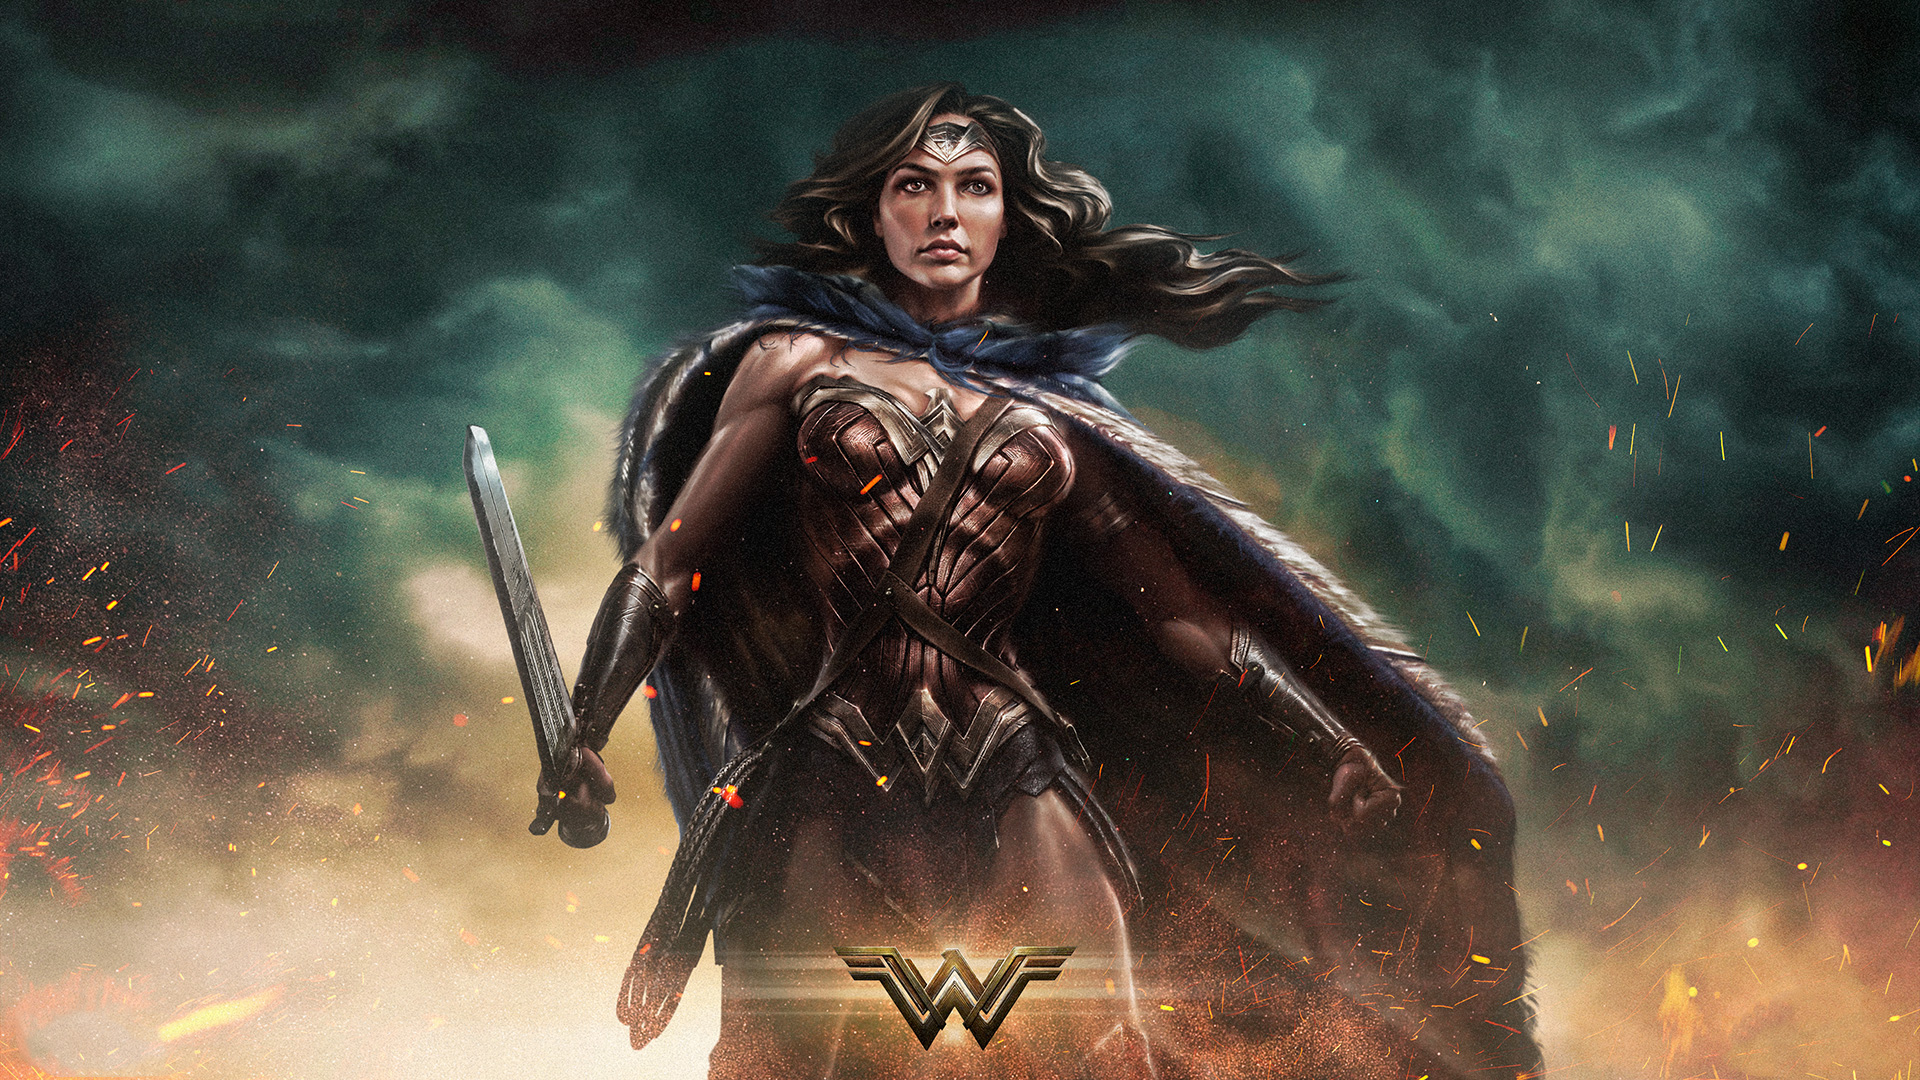 Wonder Woman 1984 HD/4K Wallpapers Free Download (Mobile and PC)